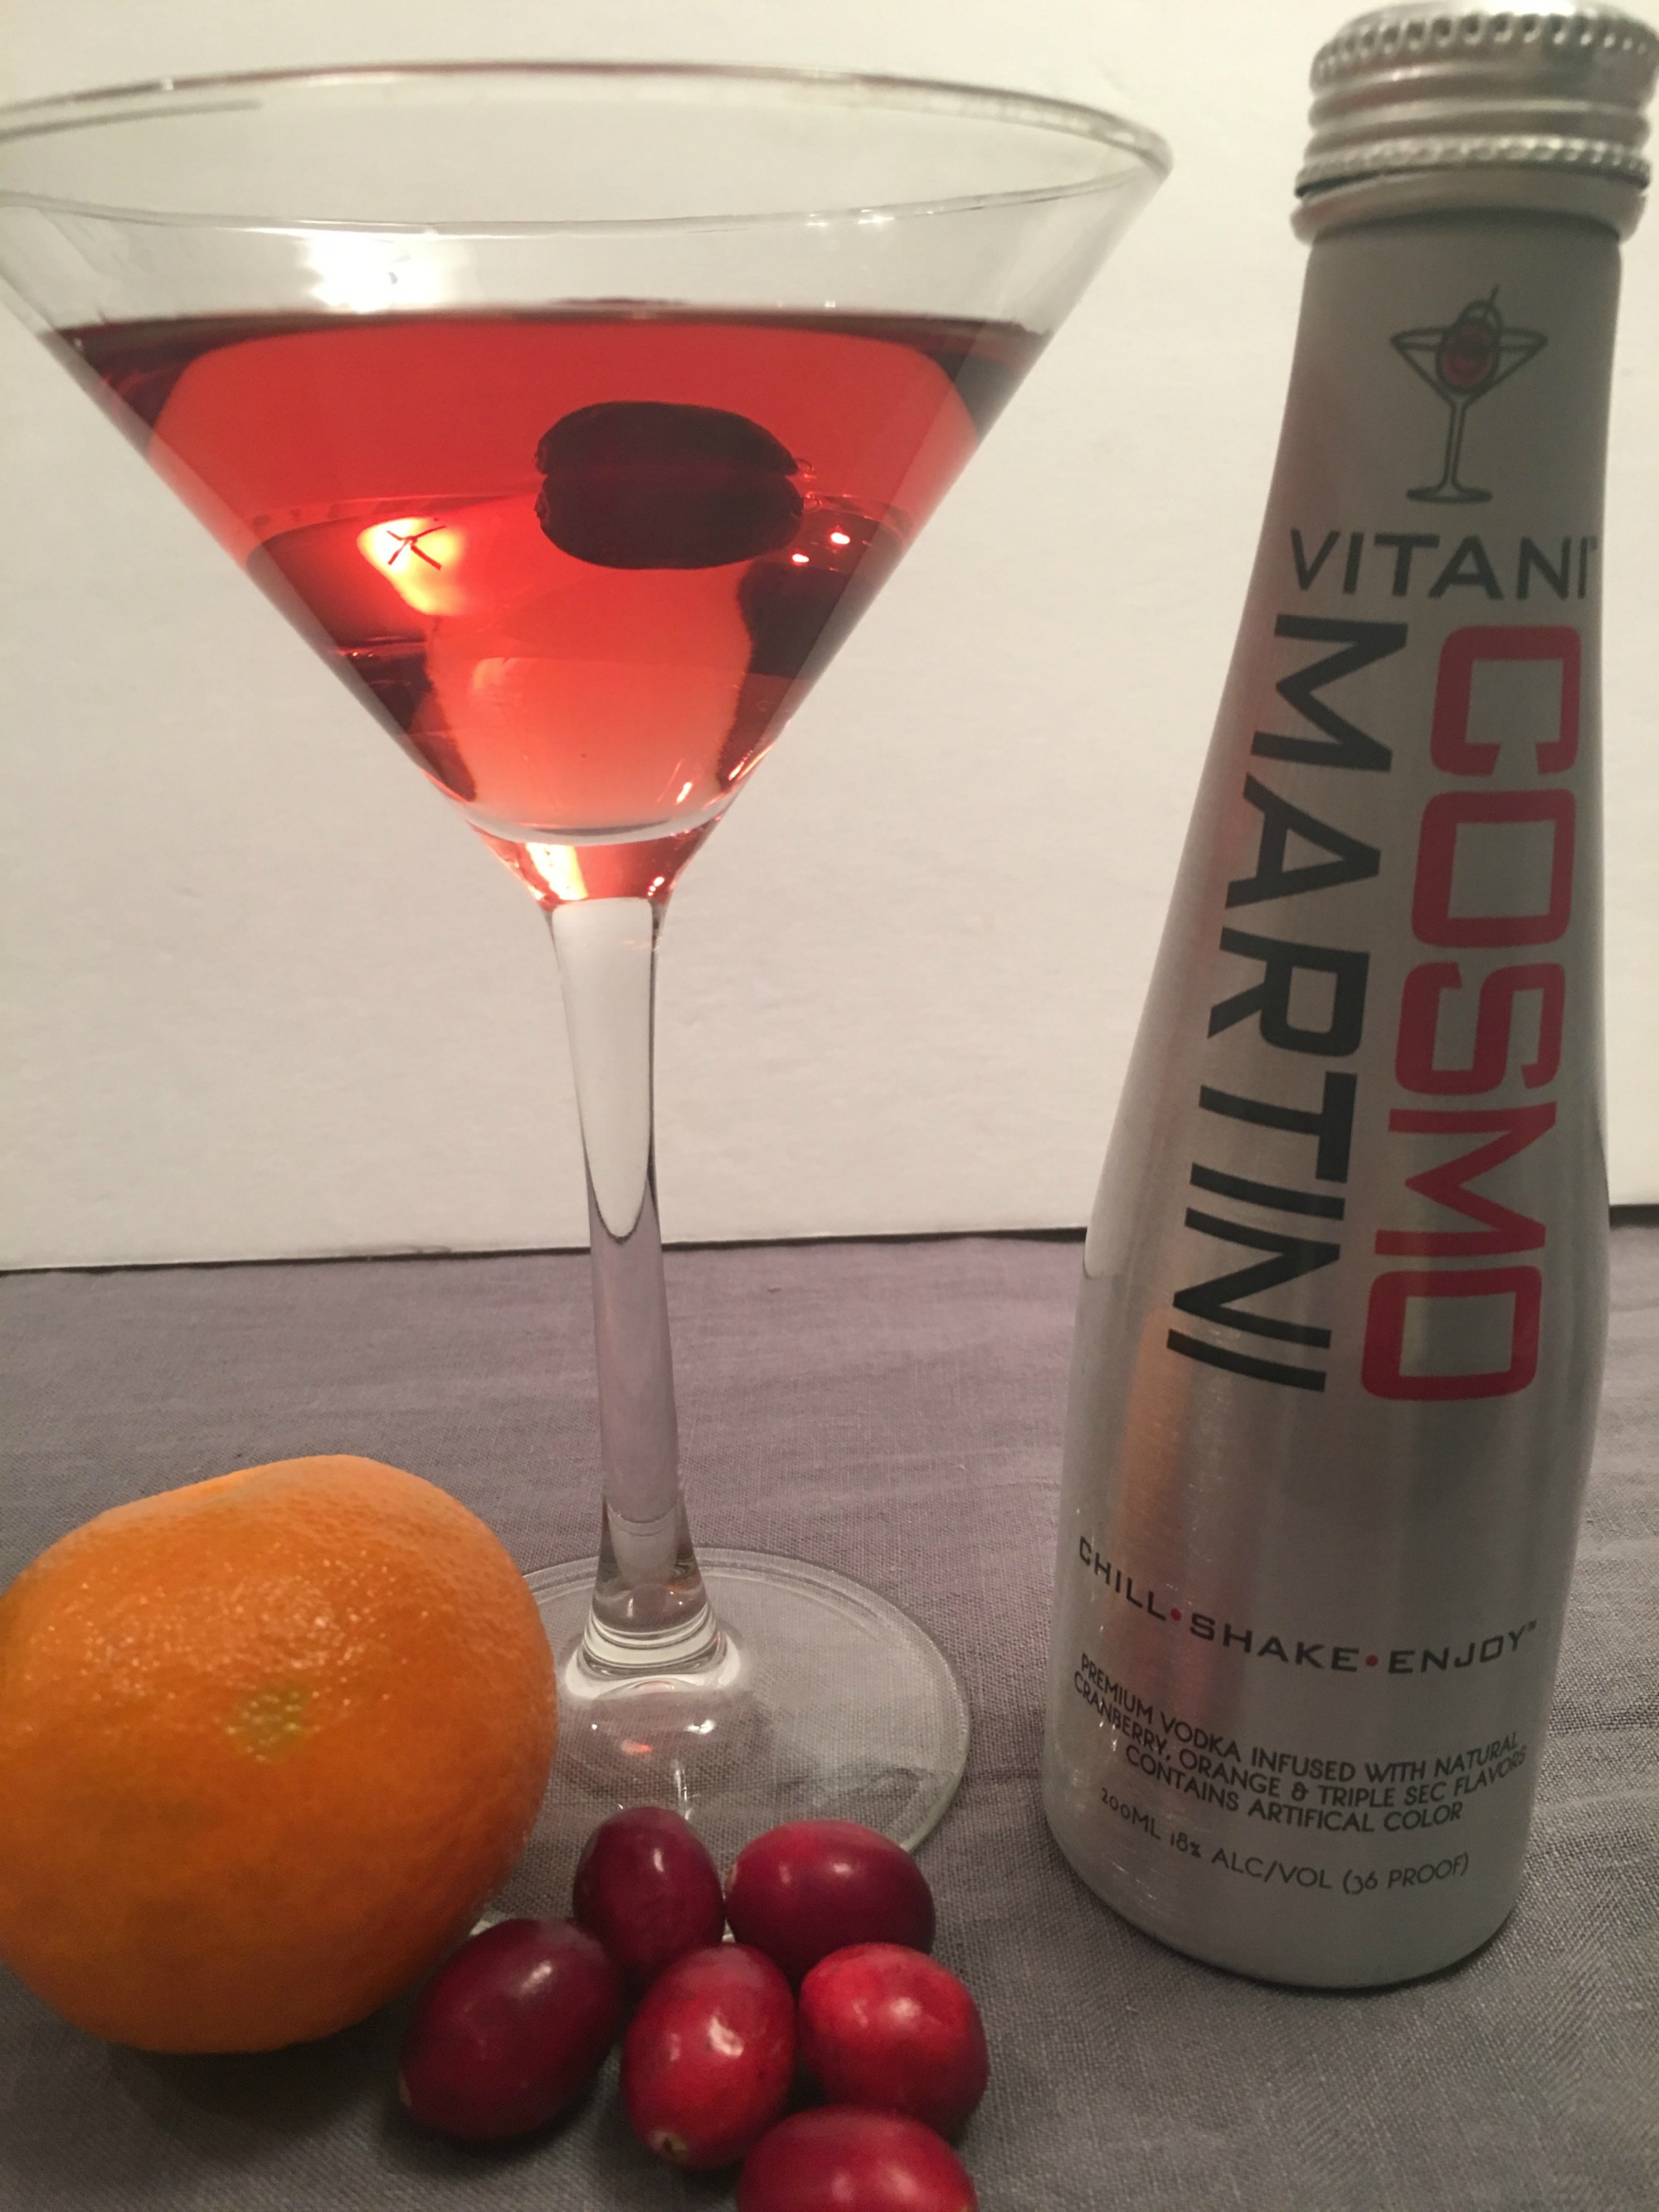 Inspiring Kitchen Vitani Martinis